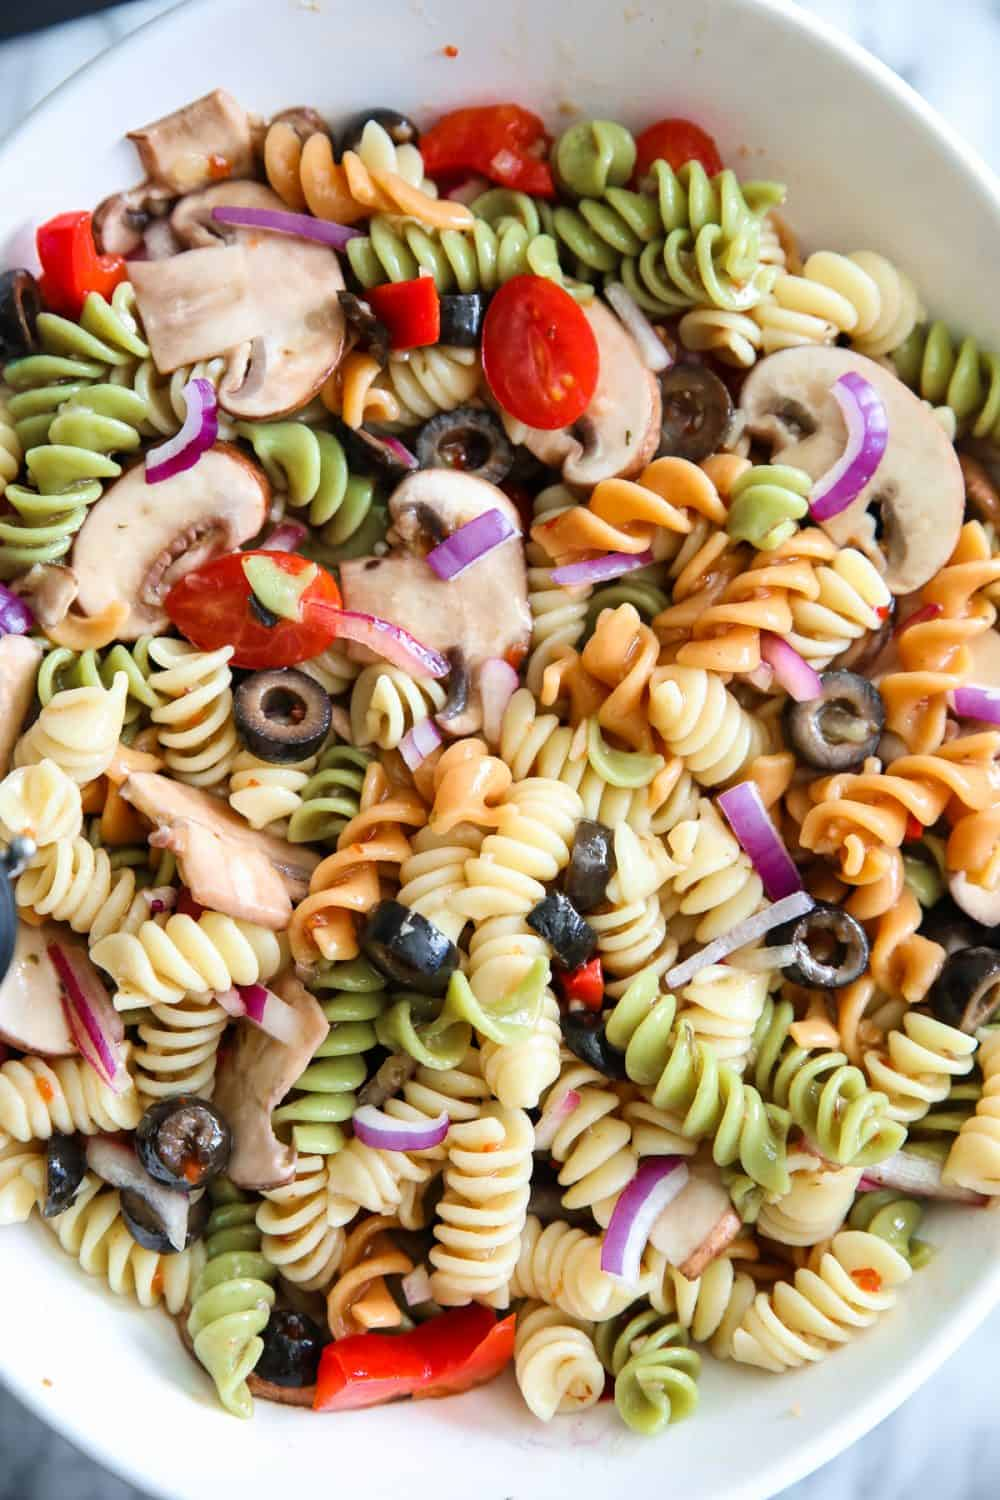 an overhead shot of a Tri Color Pasta Salad in a large white bowl. Its loaded with vegetables like mushroom, peppers, red onion, tomatoes, black olives.